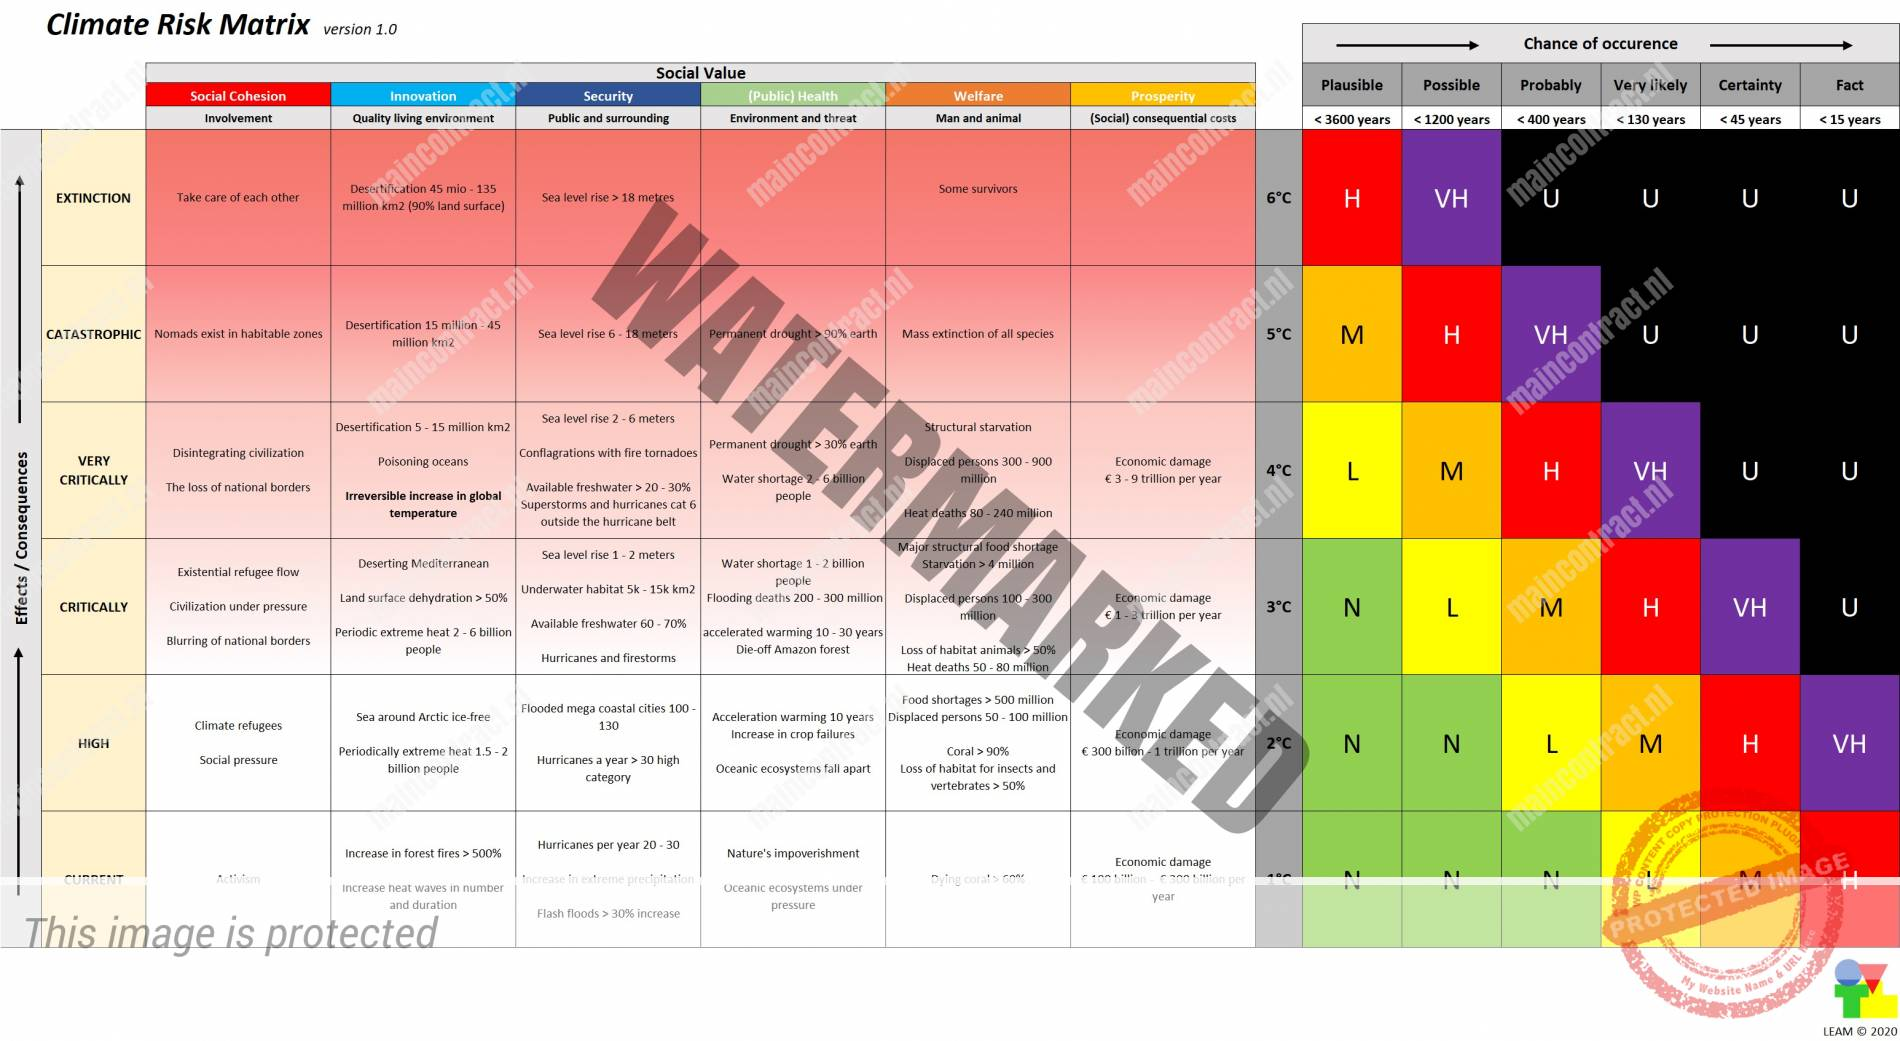 CLIMATE-RISK-MATRIX